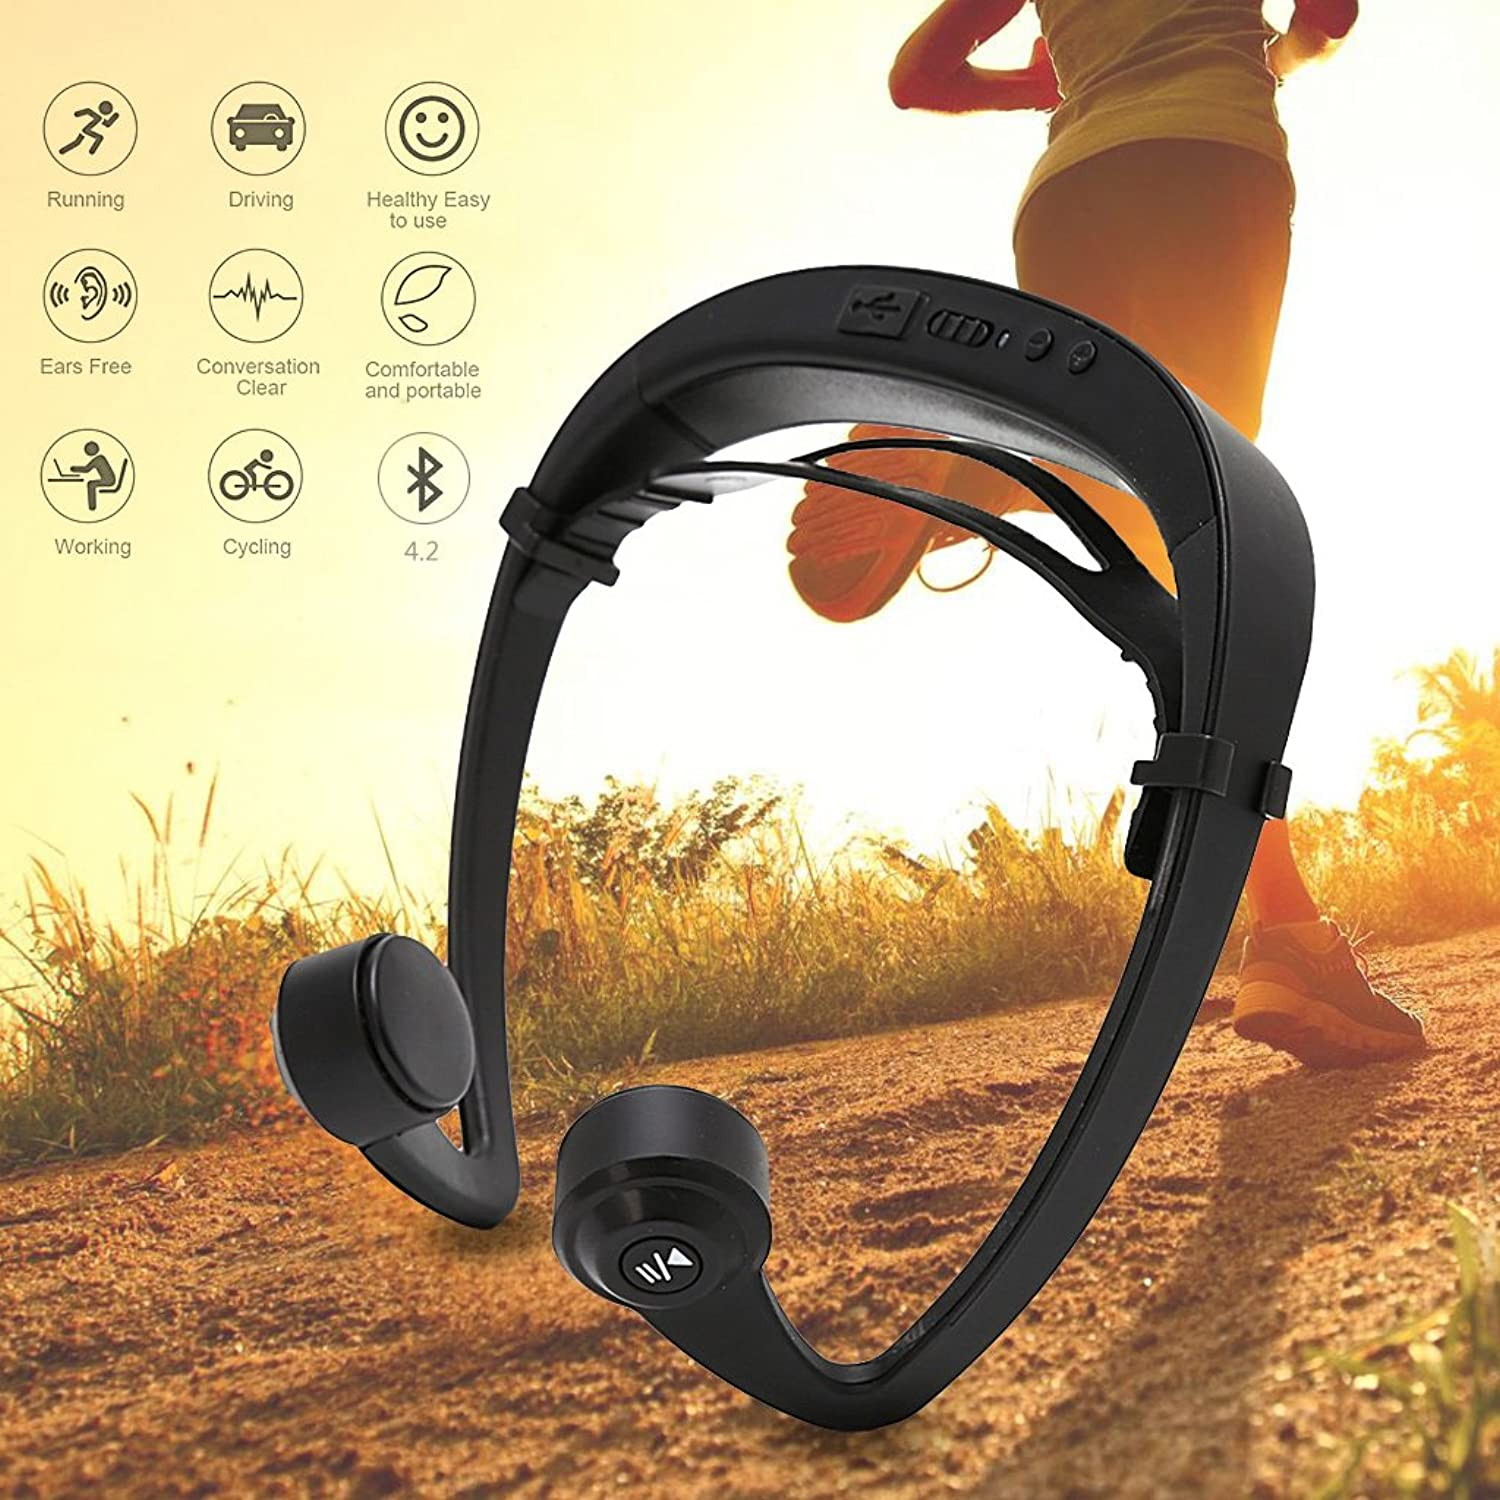 Yumian blueeetooth Headphones, V9 Ear Hook Bone Conduction blueeetooth 4.2 Sports Headphone Headset With Mic